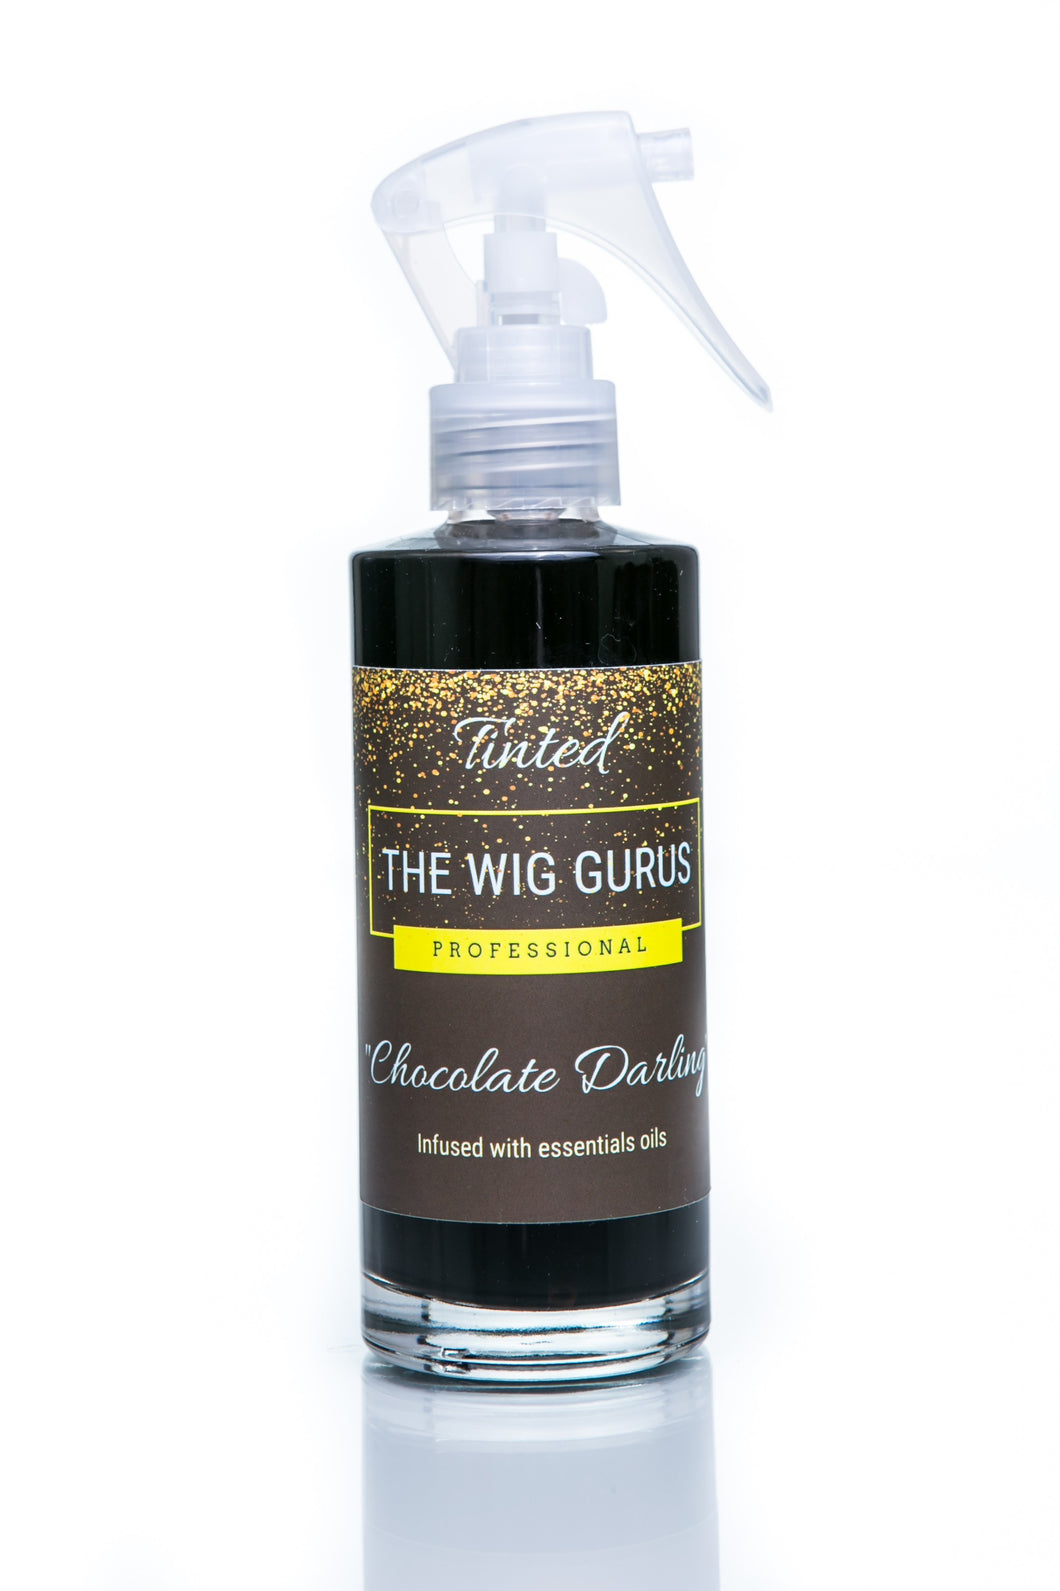 The Wig Gurus Chocolate Darling (50ml)